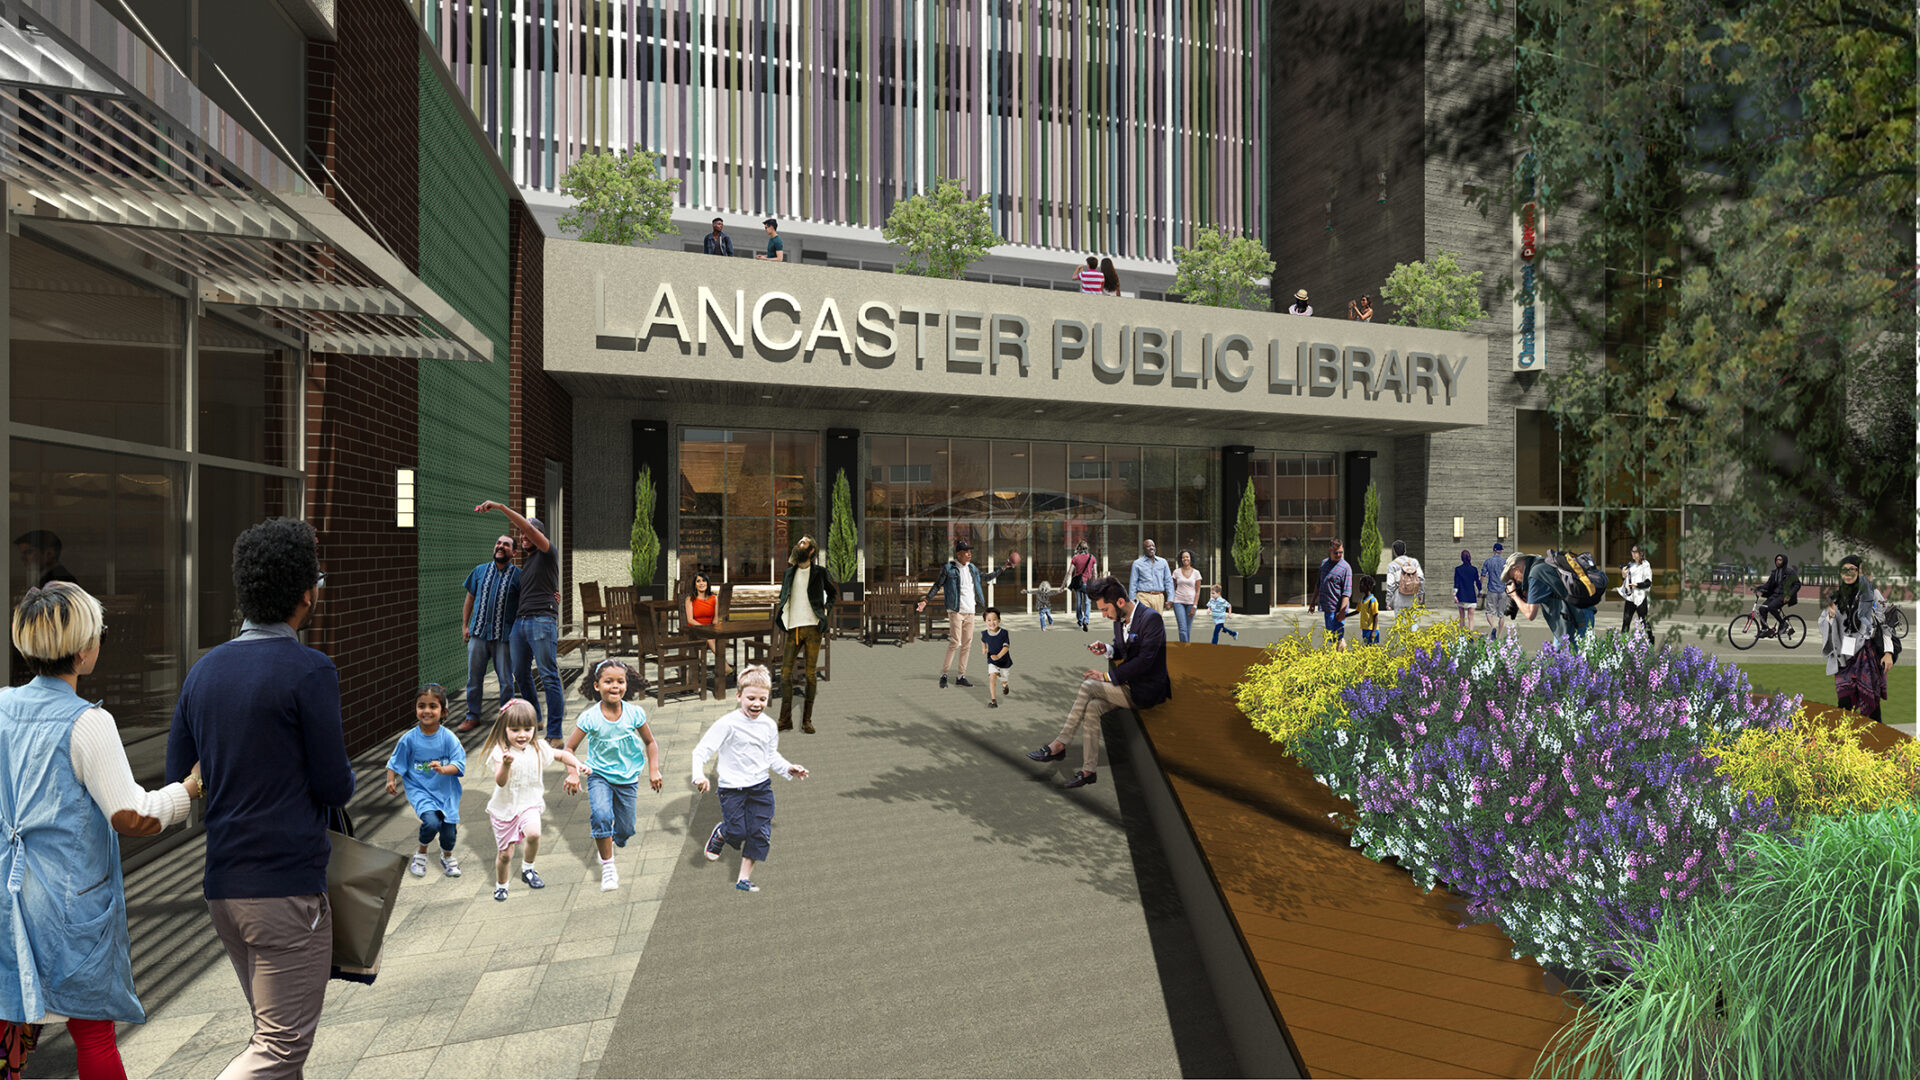 A rendering depicts the entrance of the Lancaster Public Library on Ewell Plaza, part of a redevelopment project that includes a public parking garage and a commercial building. (Source: Hammel Associates Architects)